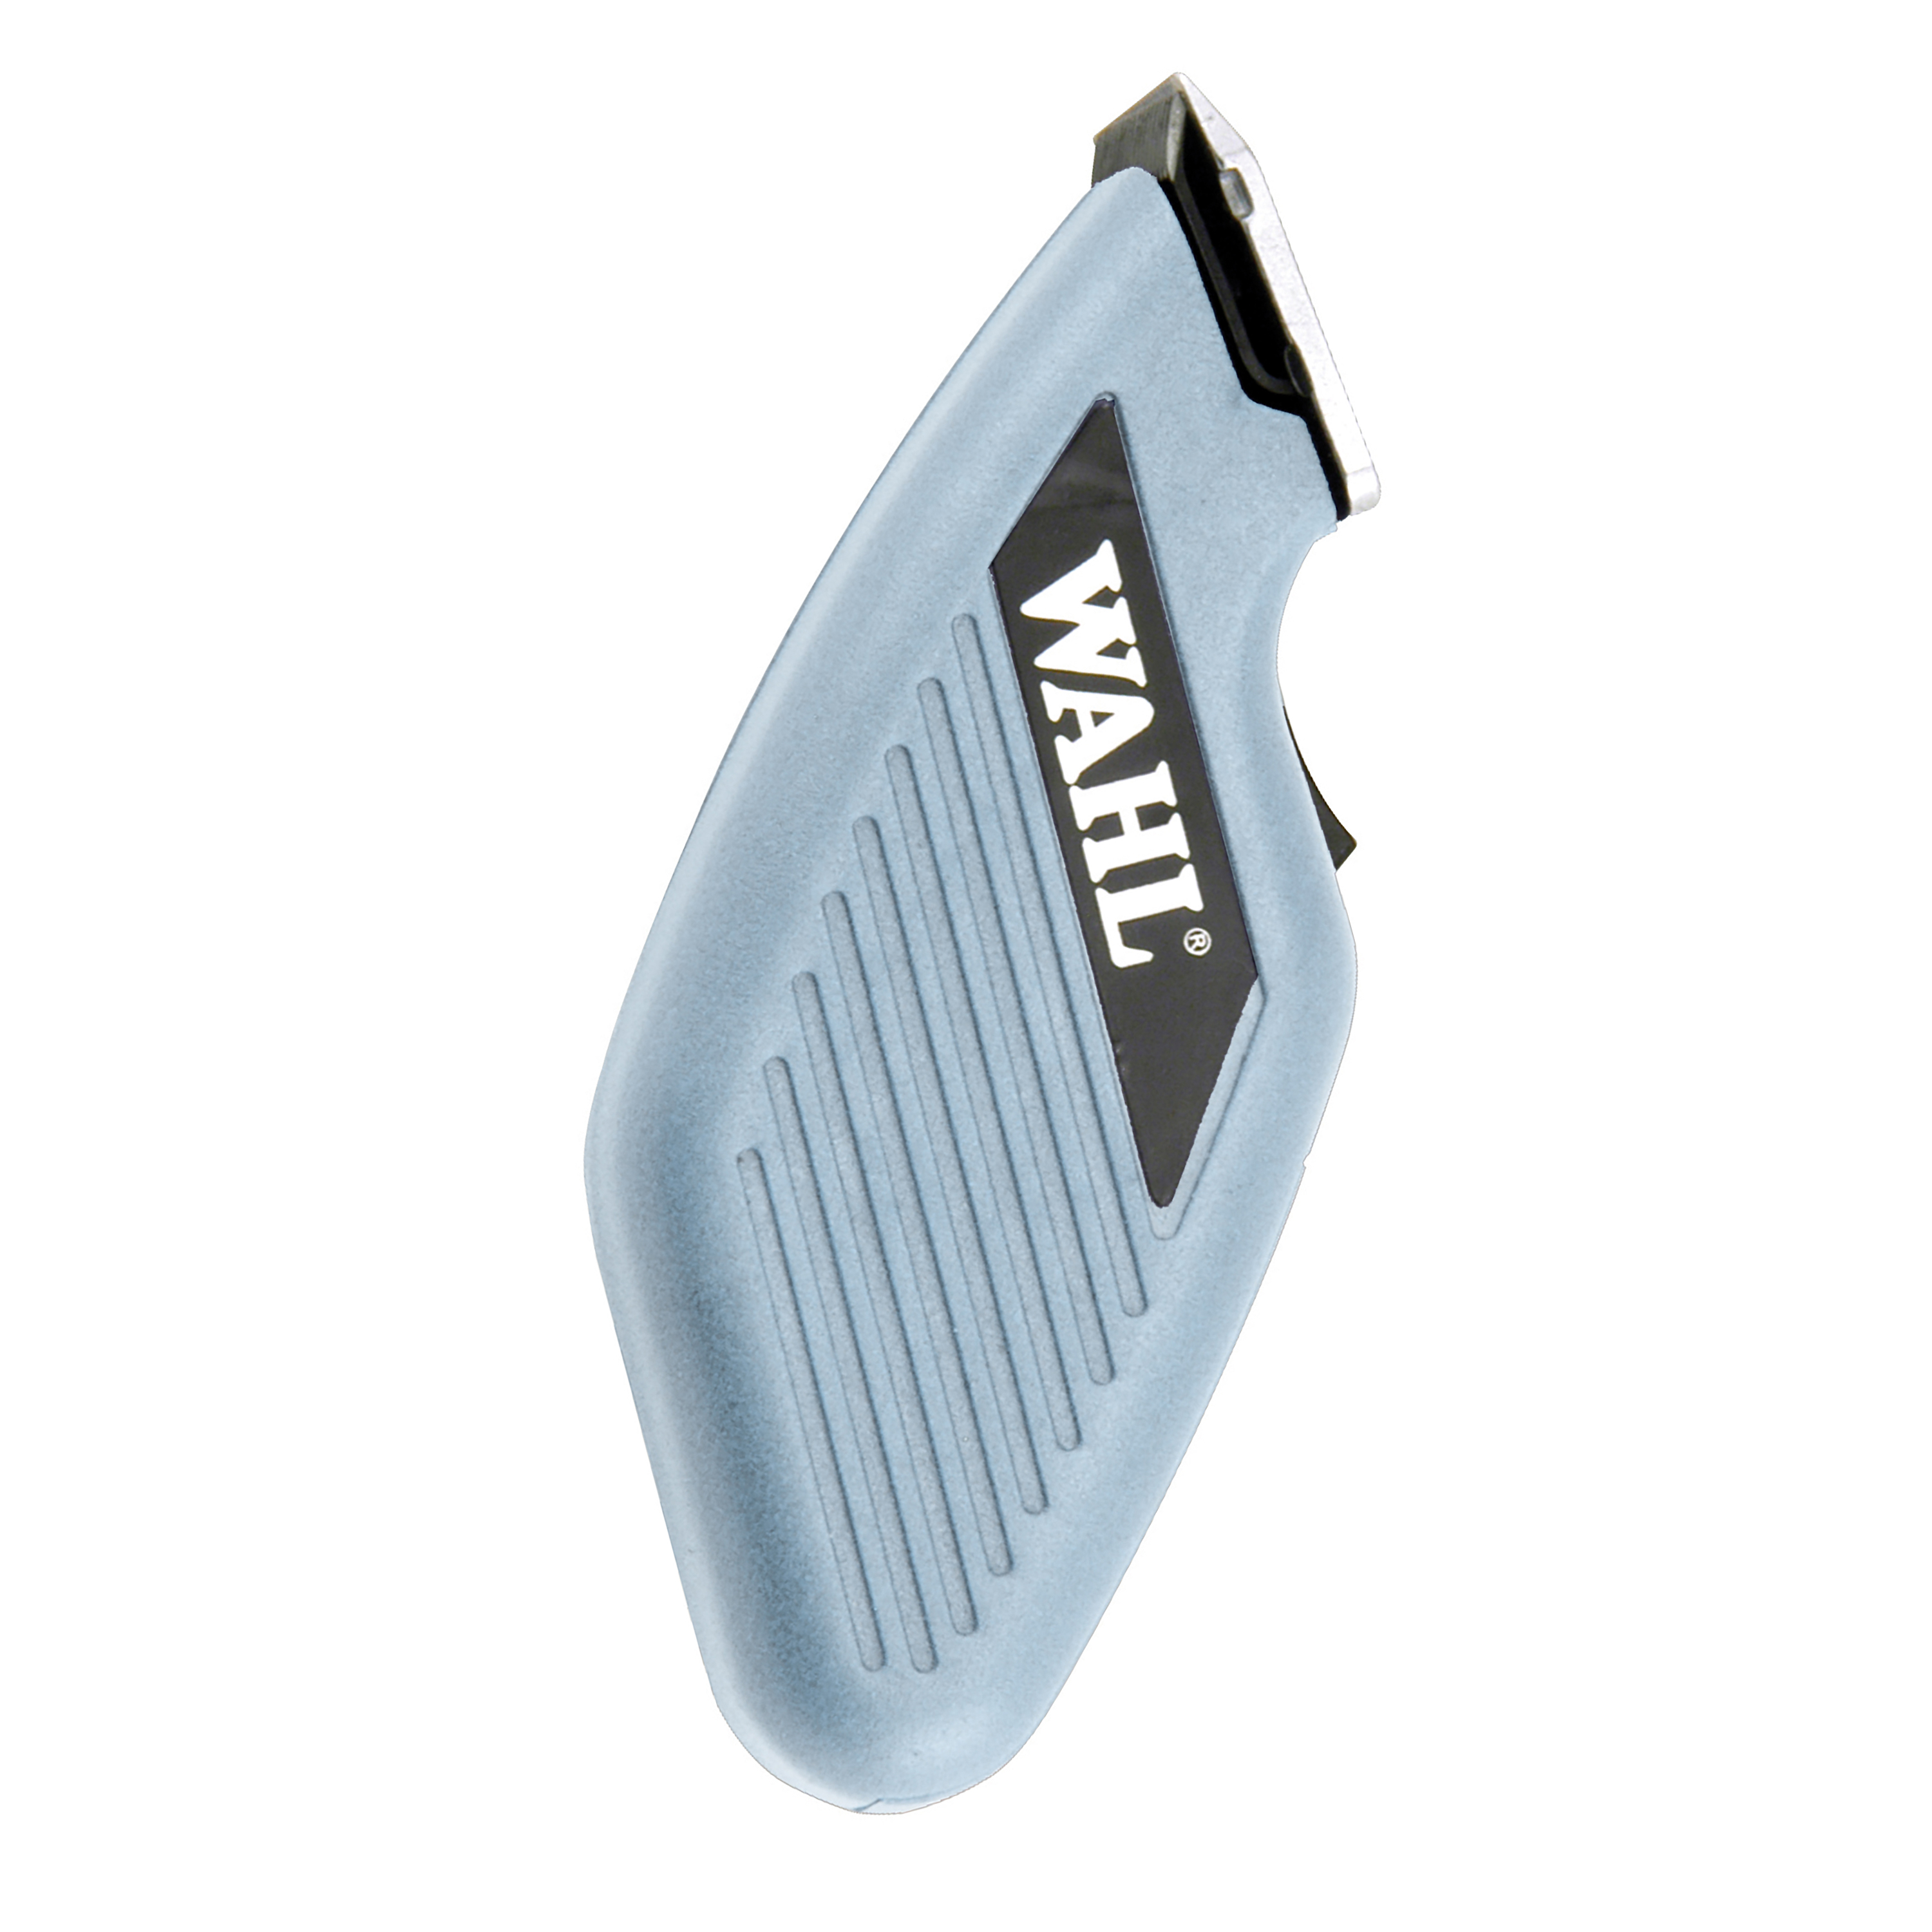 Wahl Pet Pocket Pro Trimmer Pet Grooming Tool - Model 9961-900